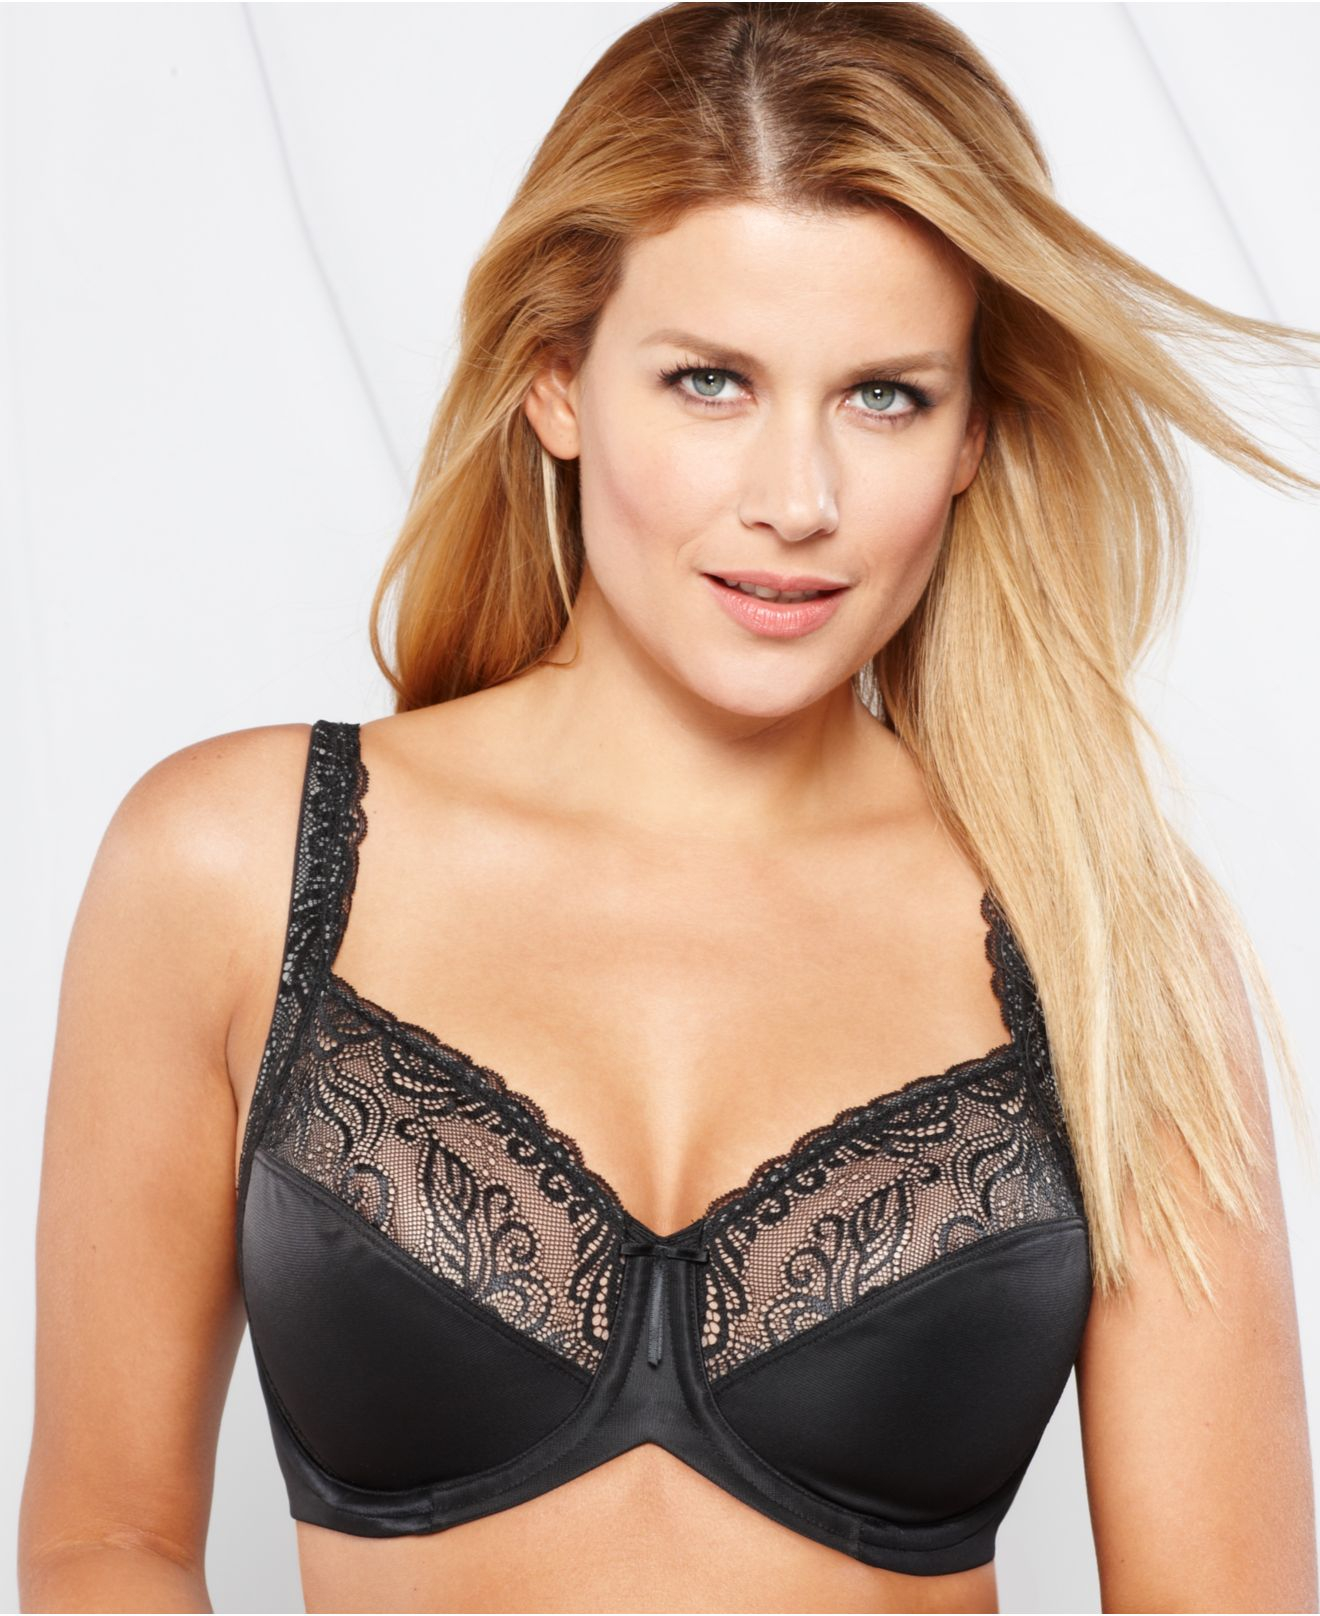 Lilyette Enchantment 3 Section Underwire Bra 0432 in Black | Lyst